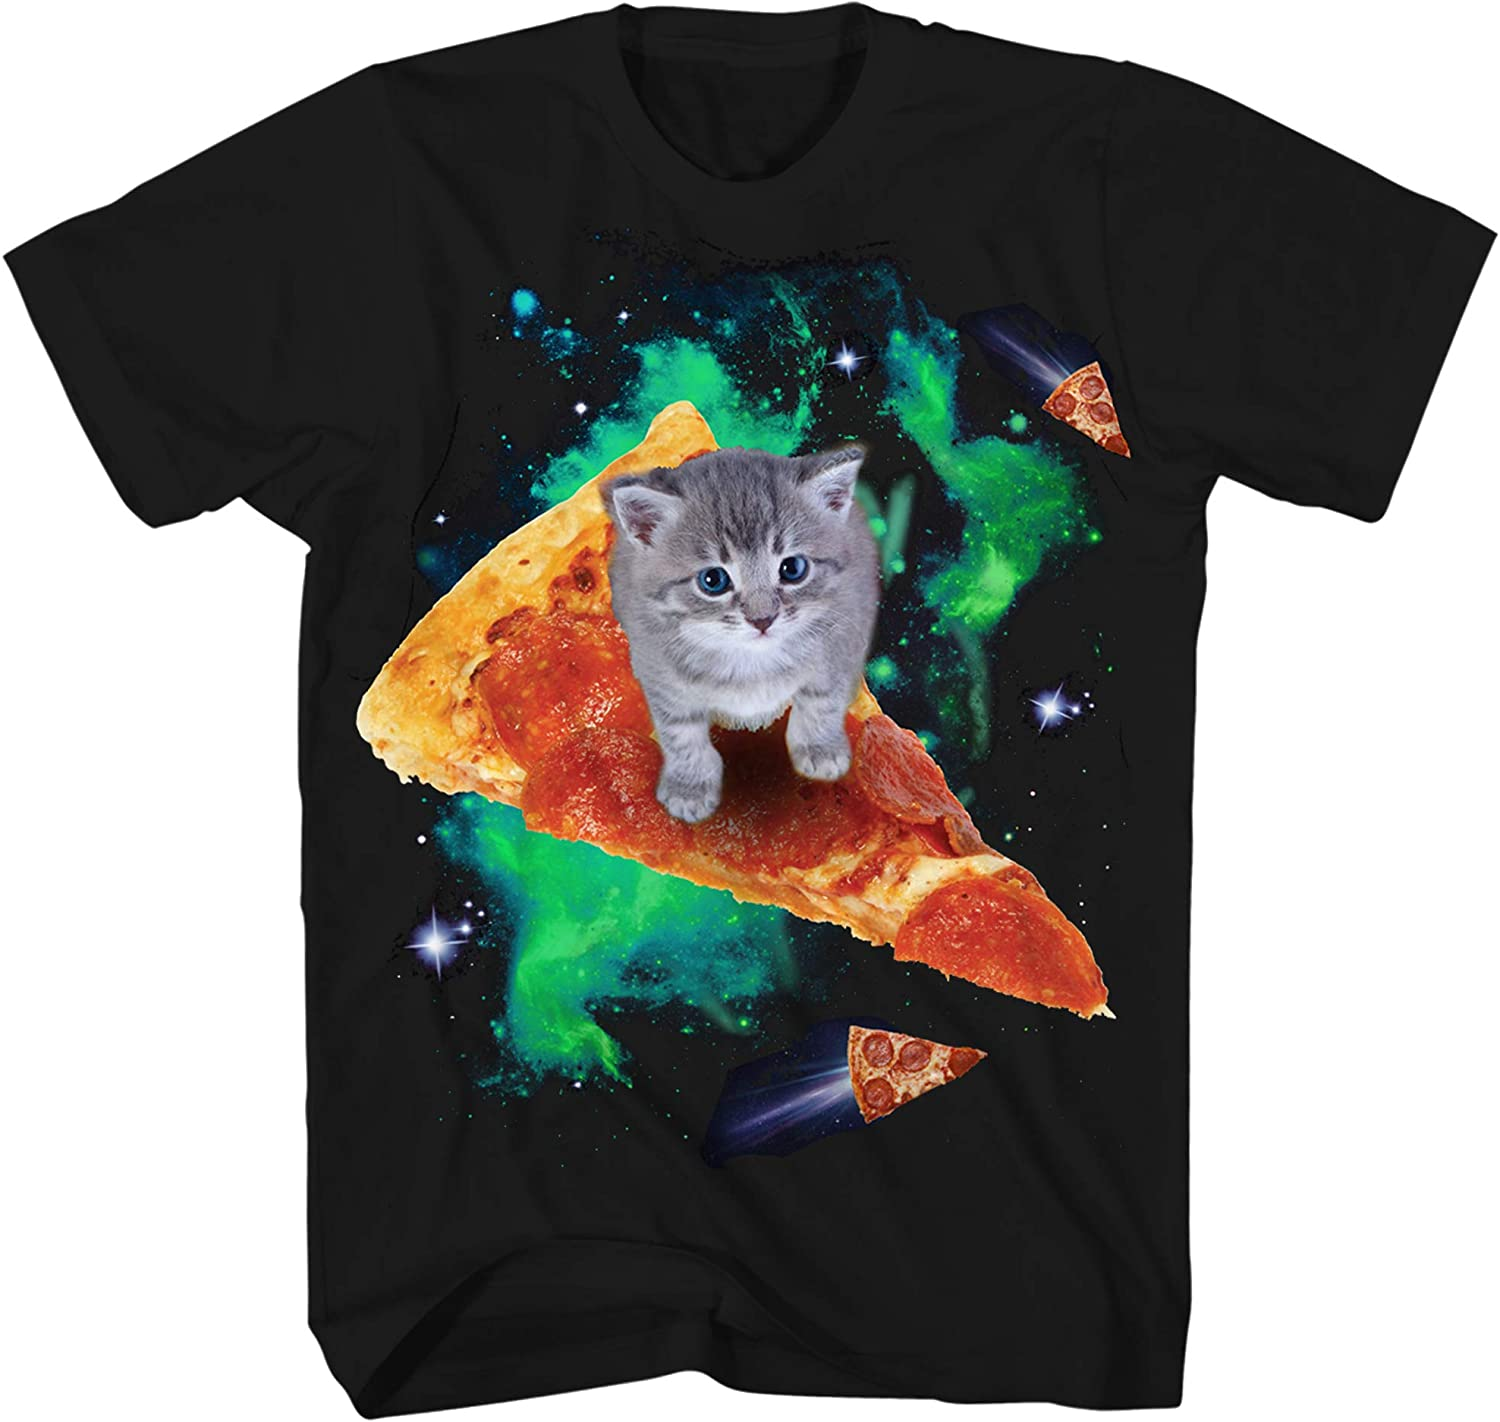 Cat Riding Pizza Galaxy Kitten Outerspace Neon Classic Retro Neon Funny Humor Pun Adult Men's Graphic T-Shirt